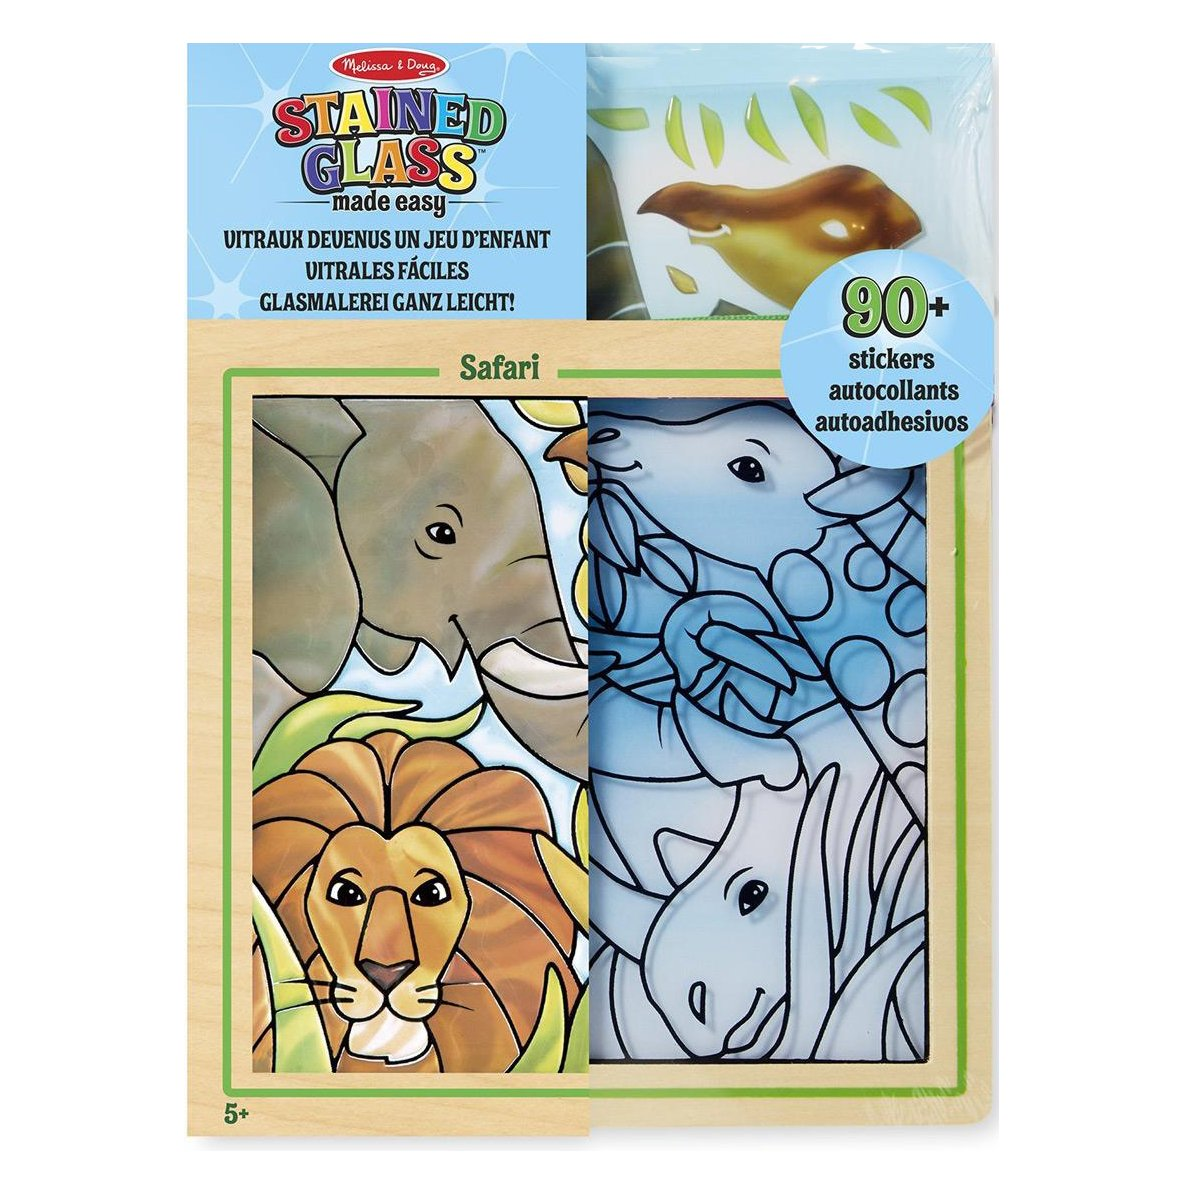 Stained Glass Made Easy Activity Kit, Safari